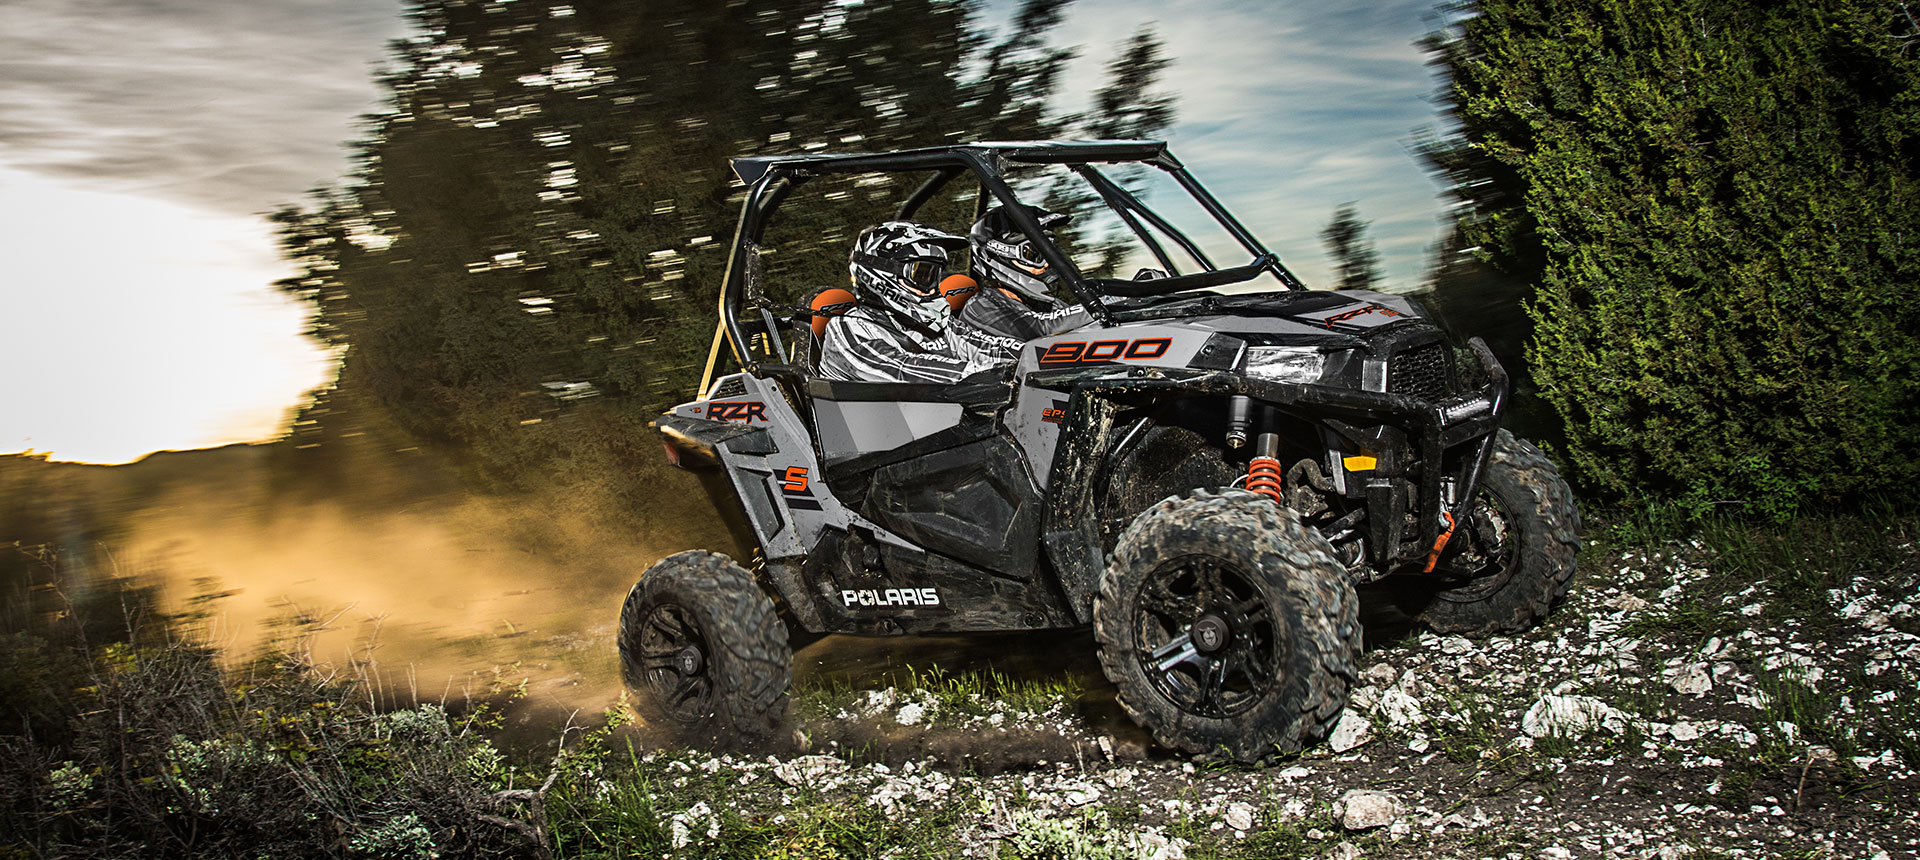 2019 Polaris RZR S 900 in Adams, Massachusetts - Photo 6